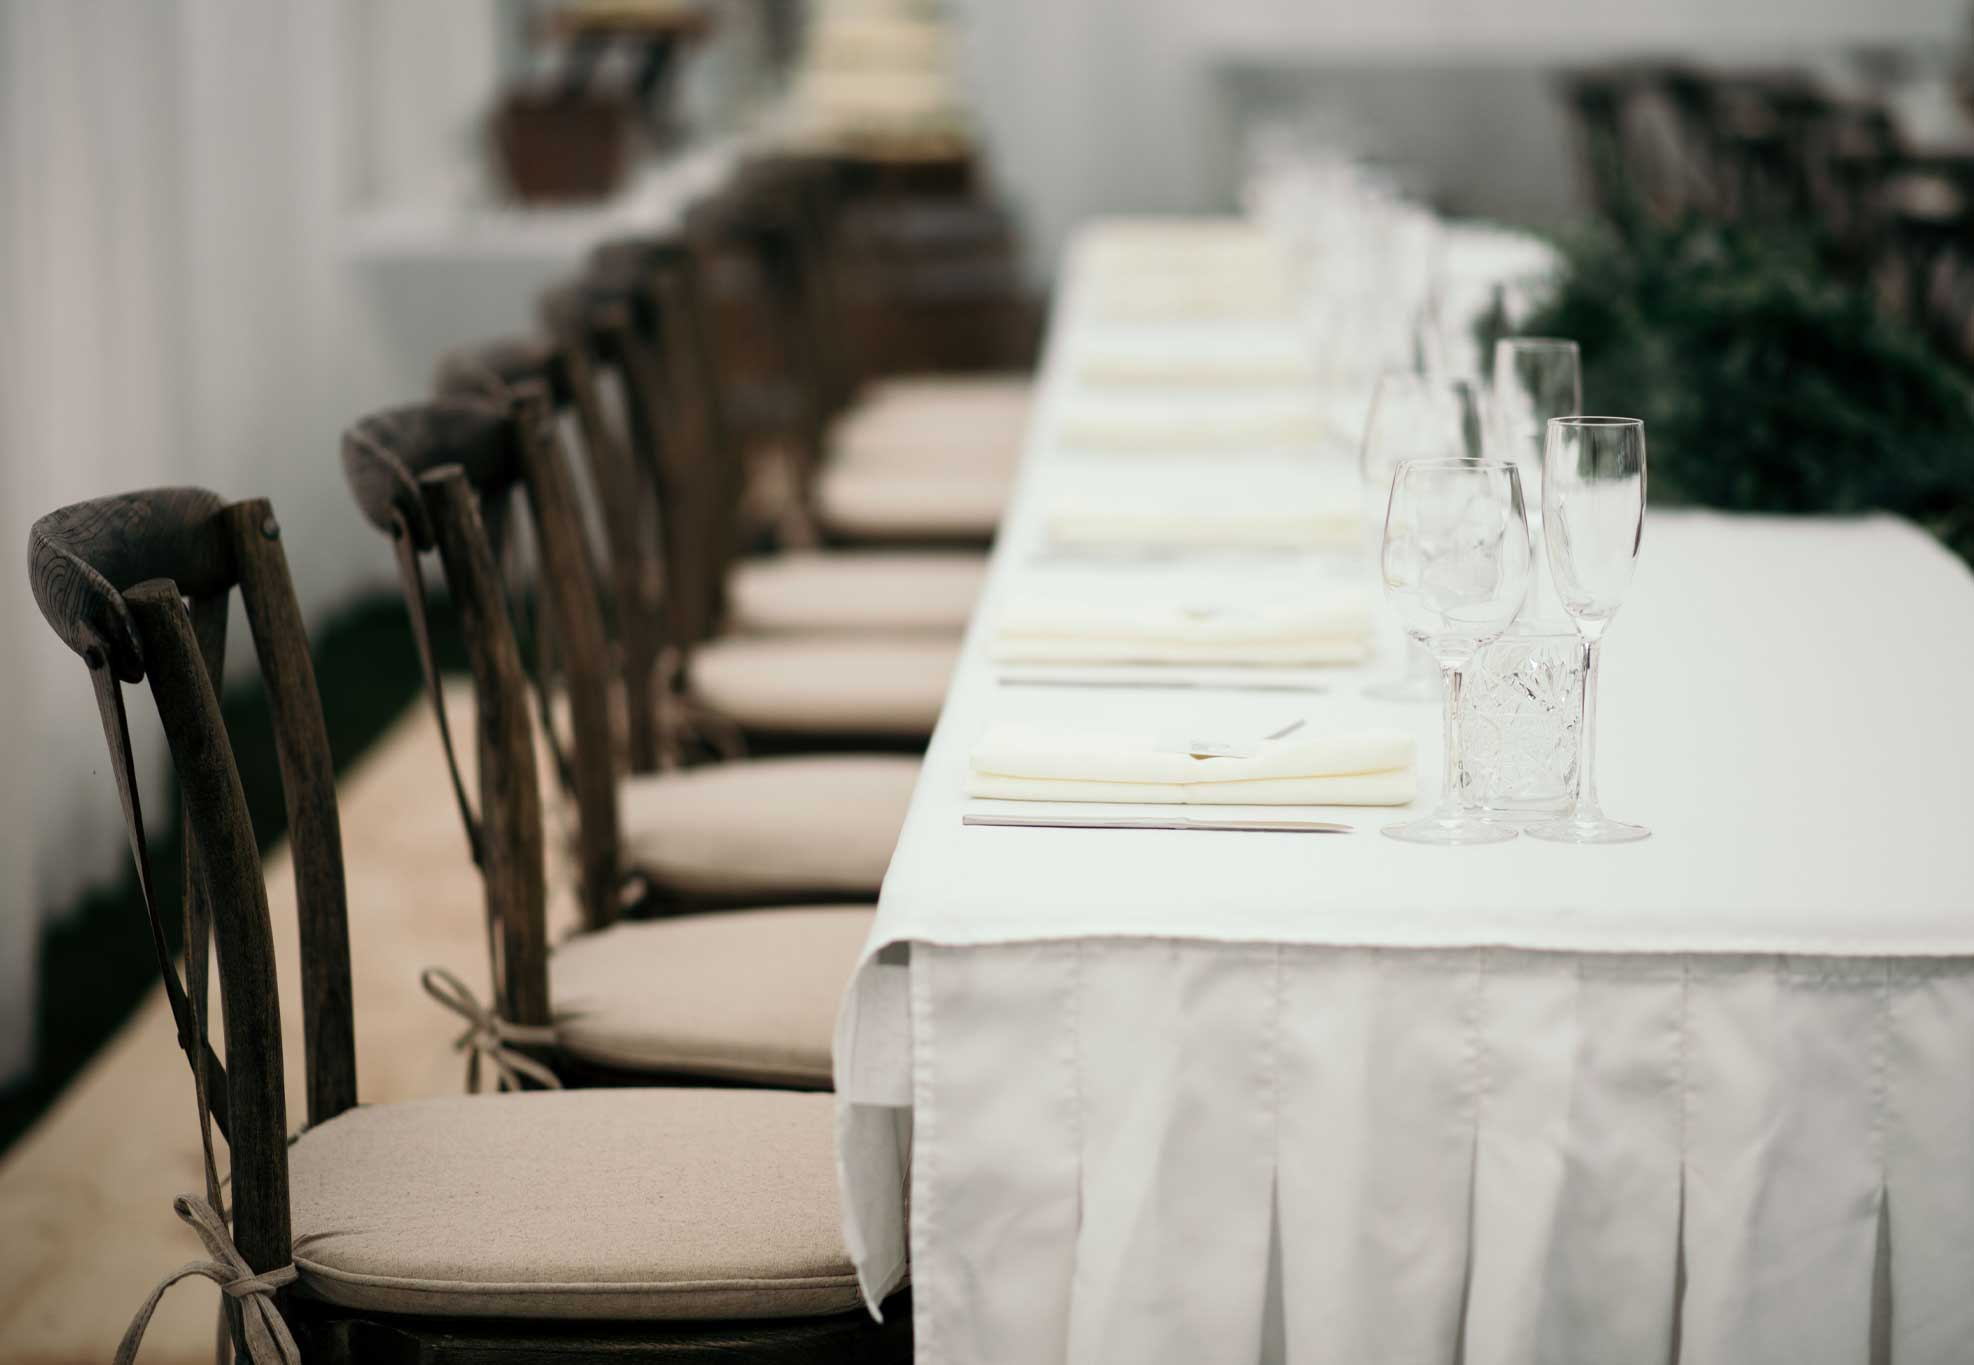 silk-estate-marquee-weddings-and-events-styling-and-hire-furniture-chairs-crossback-3